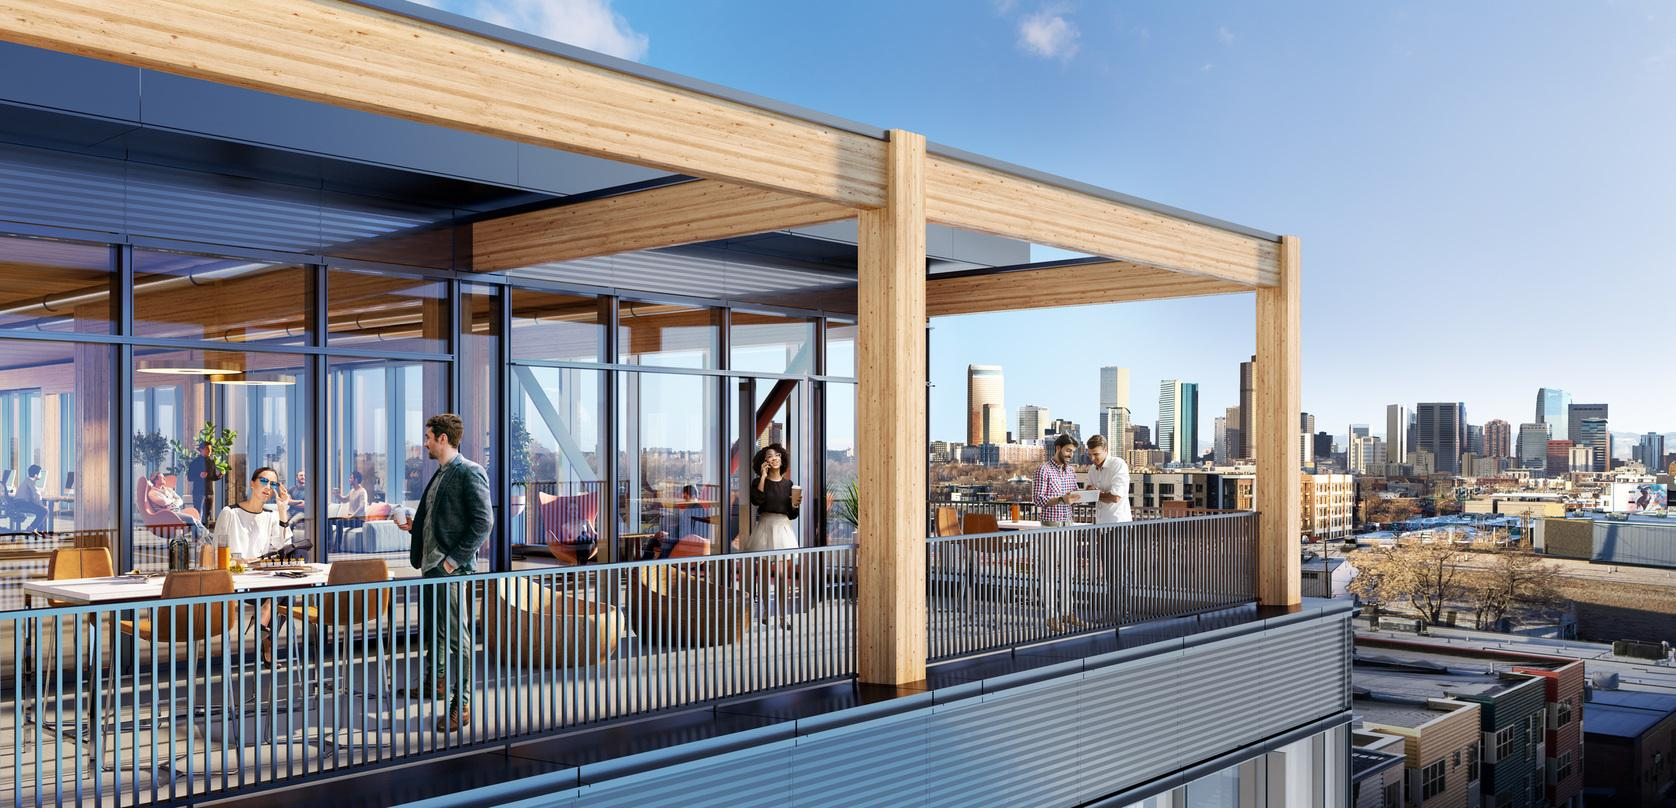 Deck design with glass frame walls incorporated into the proposal for T3 RiNo project in Denver, Colorado.